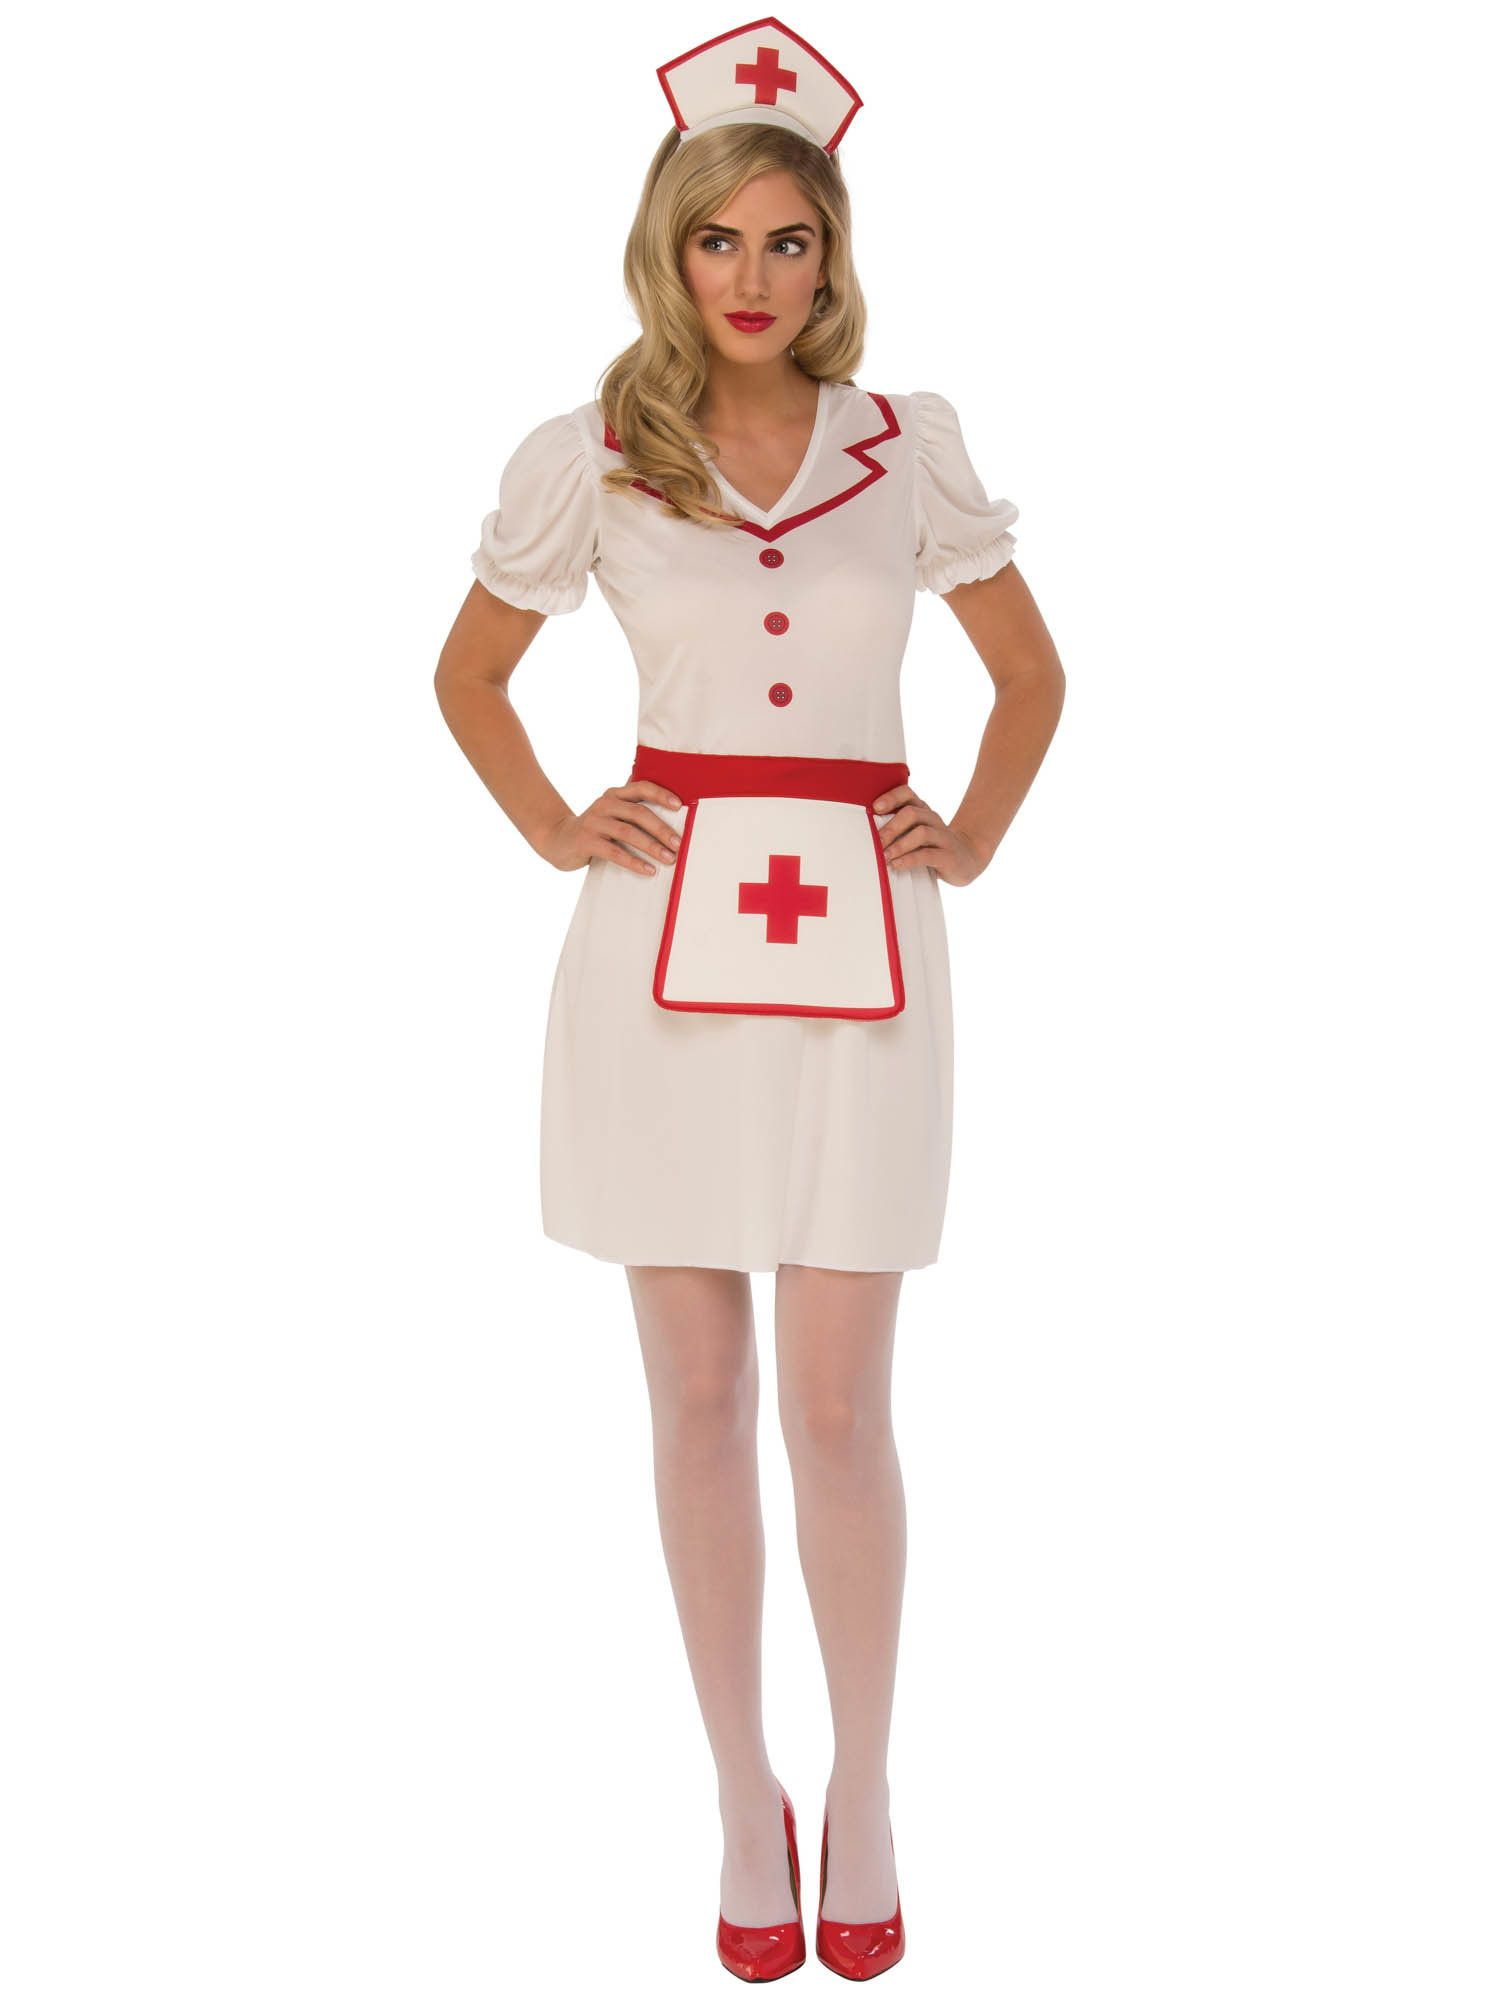 44437bf59396d Nurse Costume for Women - Womens Costumes for 2018 | Wholesale ...